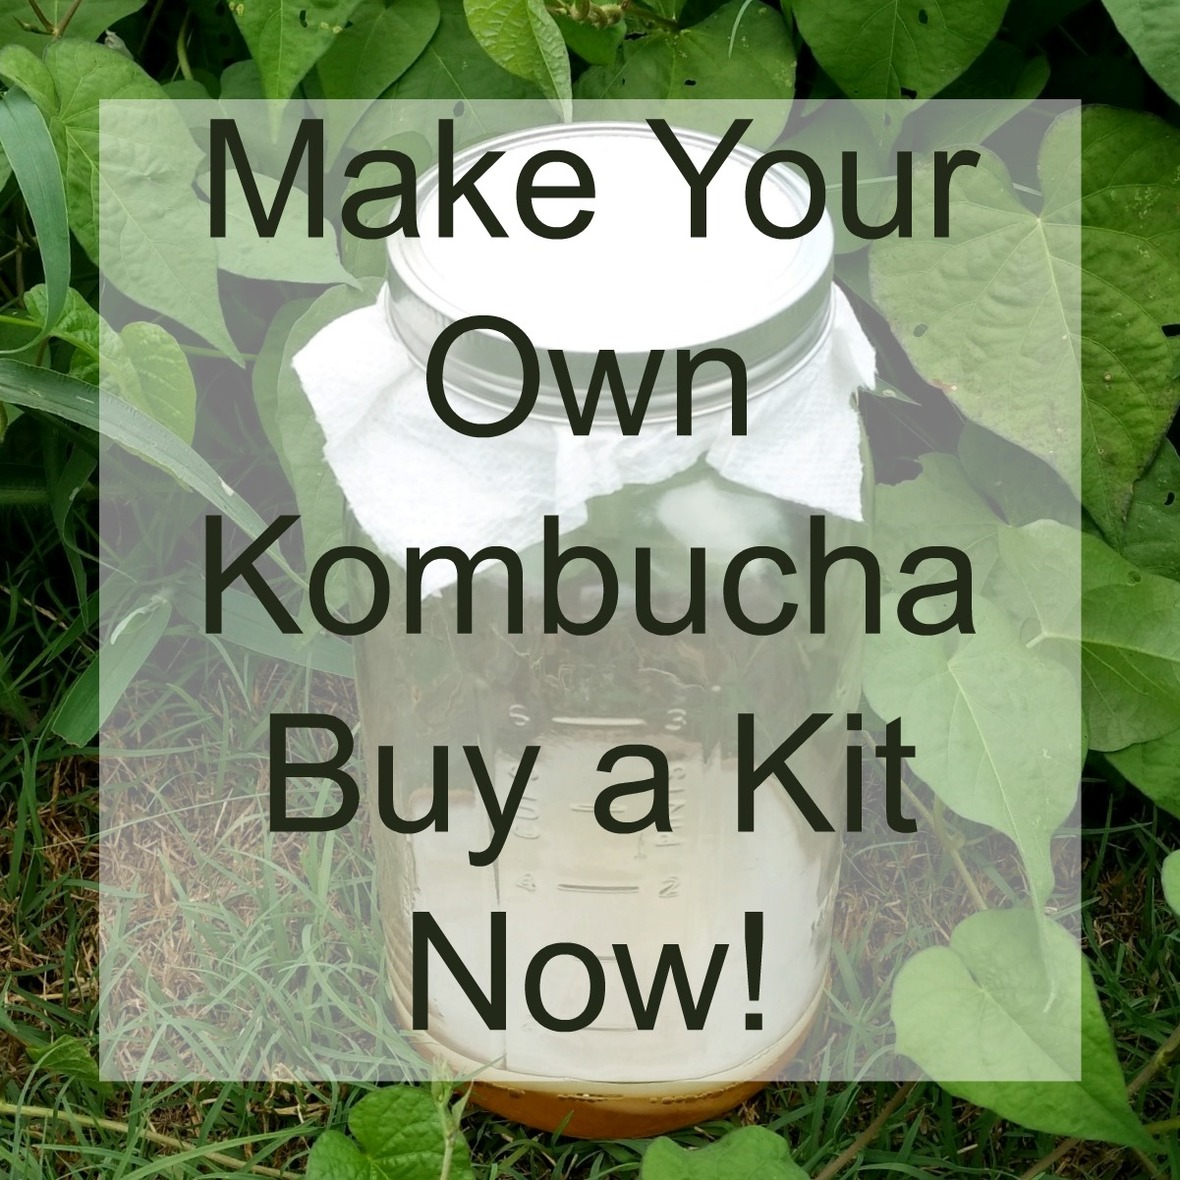 kombucha-kit-rancho-alegre-farm-1